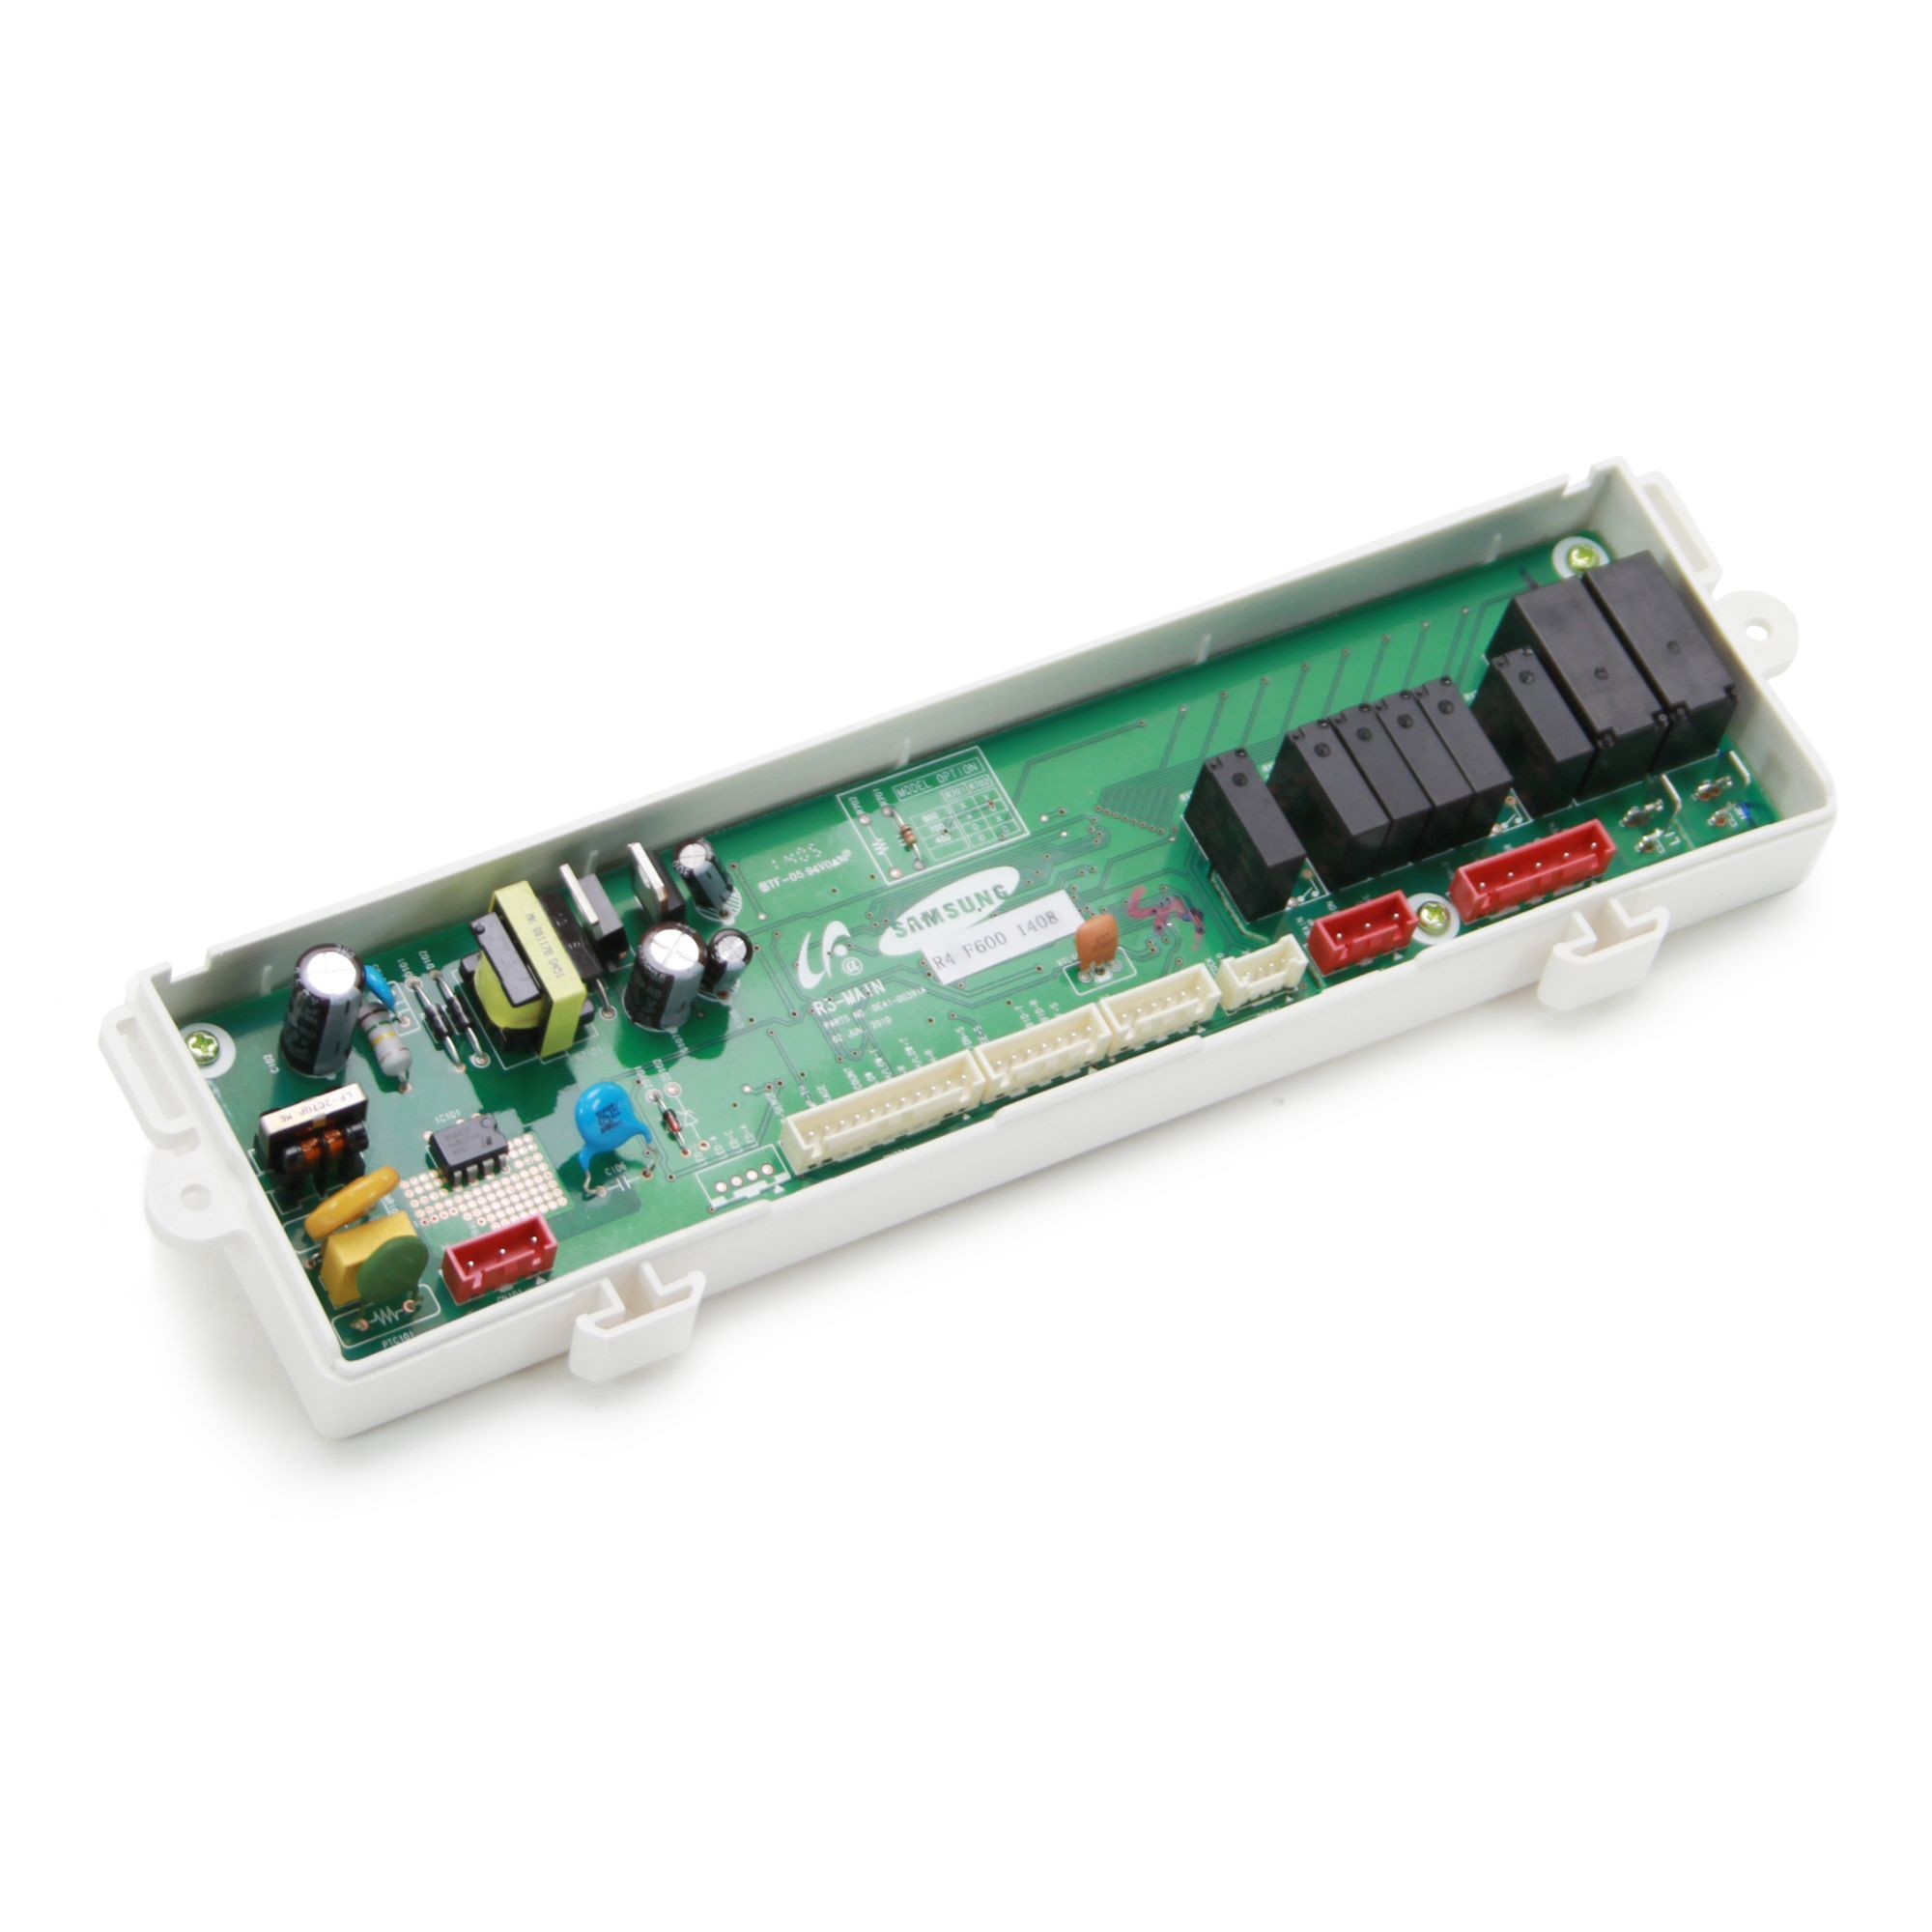 #Samsung #DD9200033C Dishwasher Main PCB Control Board